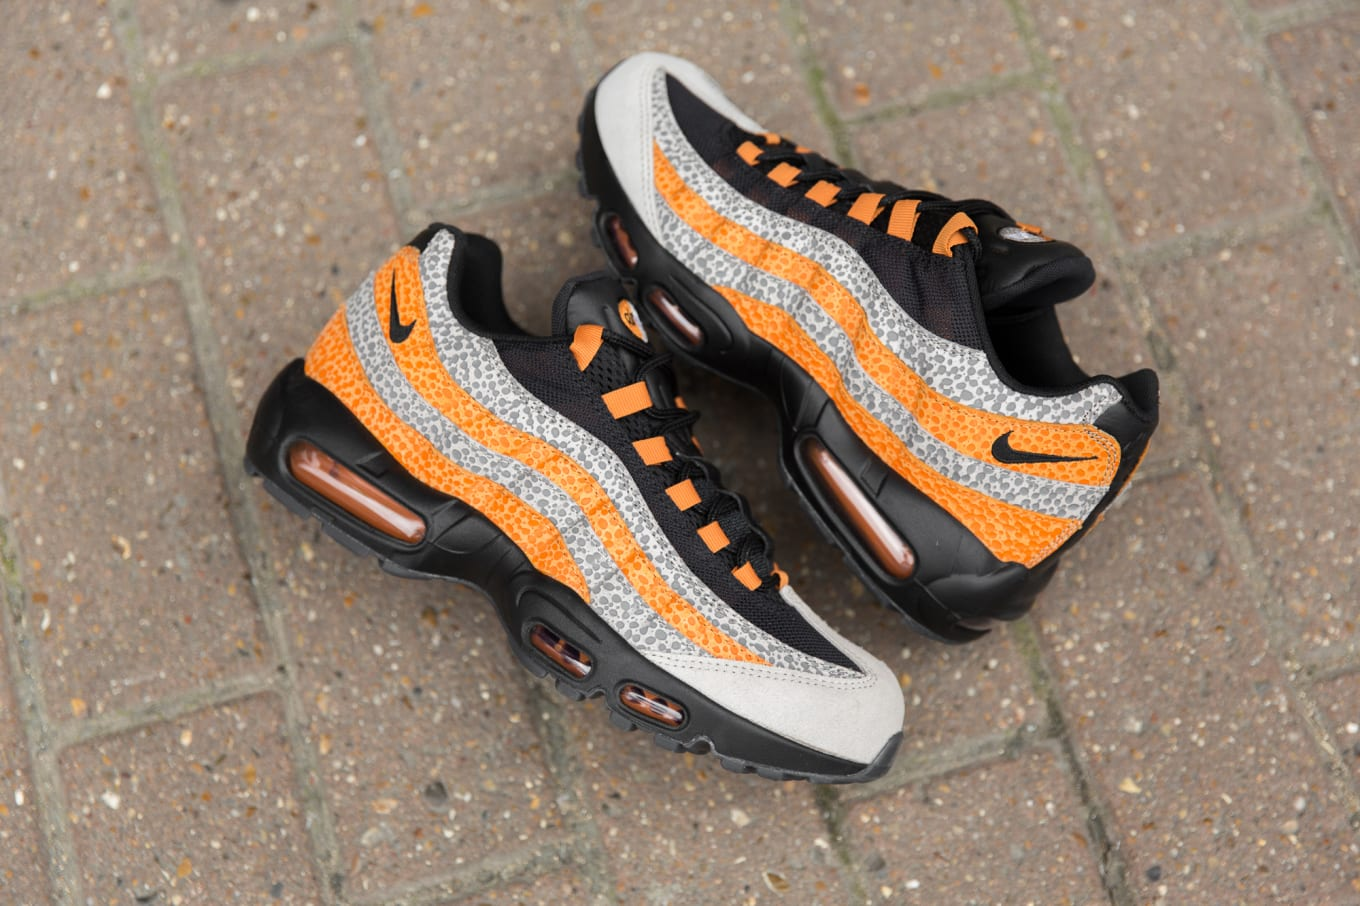 fa8f577bac Nike Air Max 95 'Safari' size? Exclusive Release Date | Sole Collector